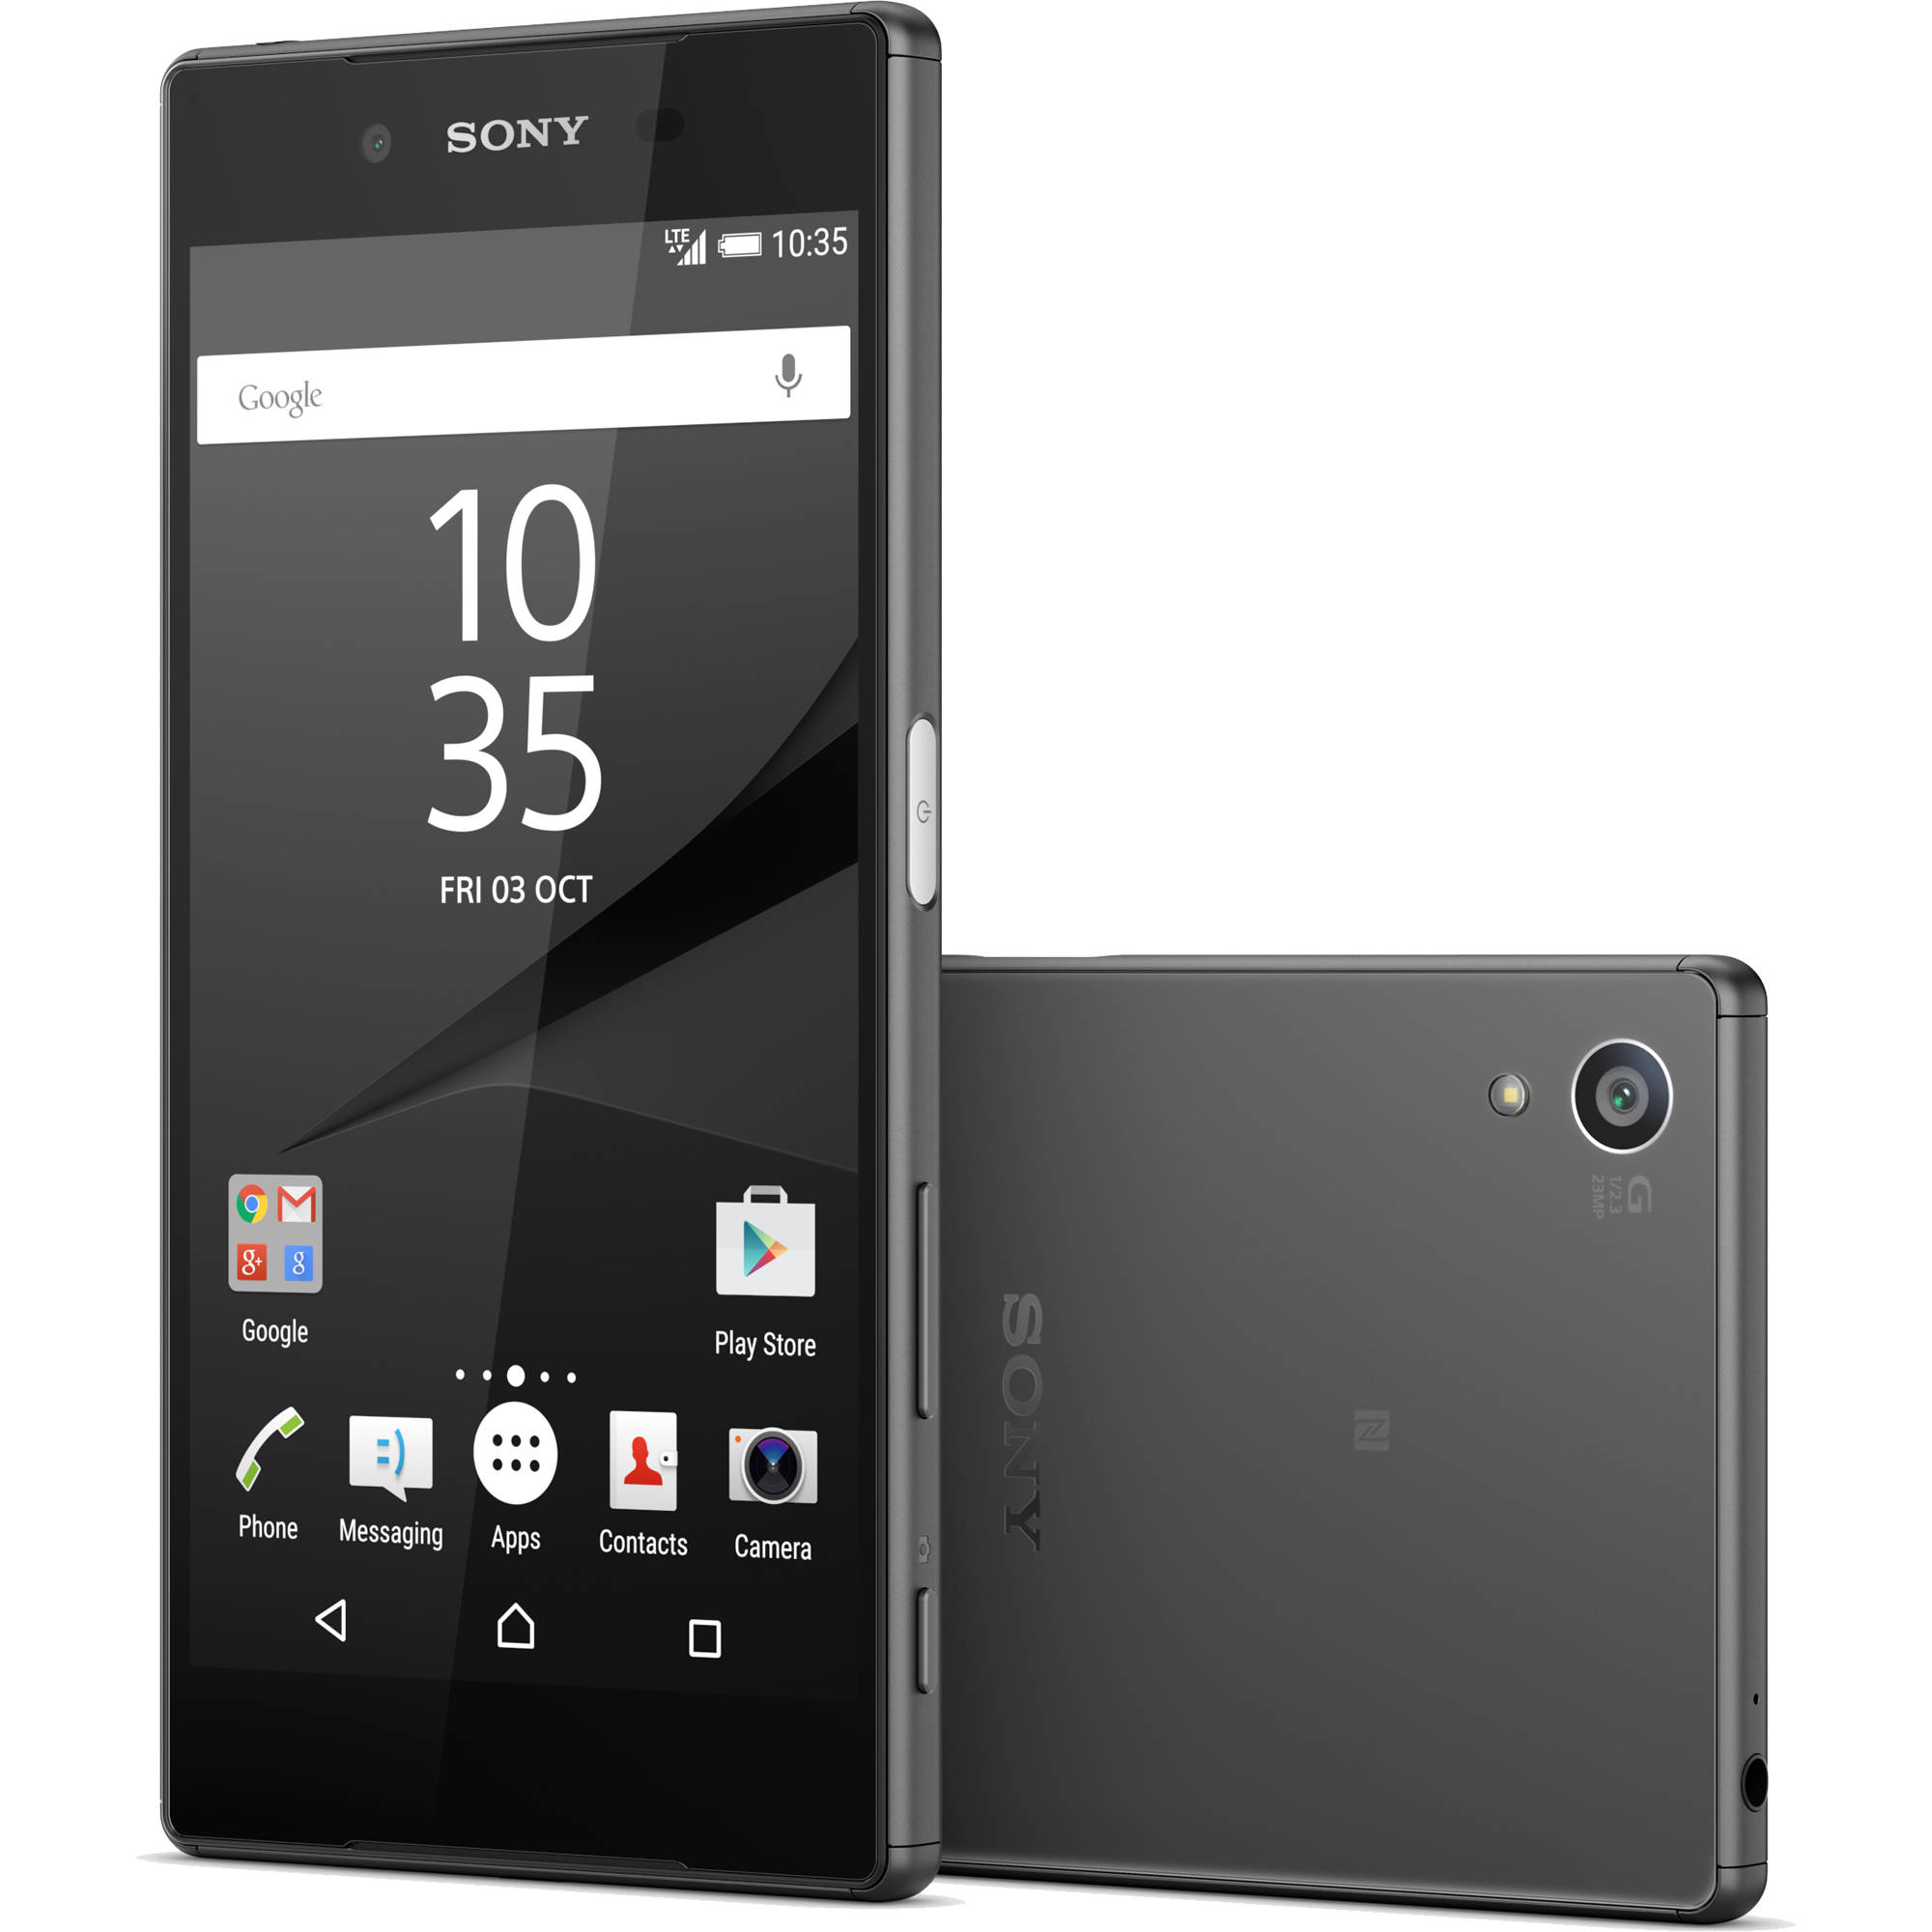 Sony xperia z5 e6603 32gb smartphone 1298 5589 bh photo video sony xperia z5 e6603 32gb smartphone unlocked graphite black ccuart Image collections